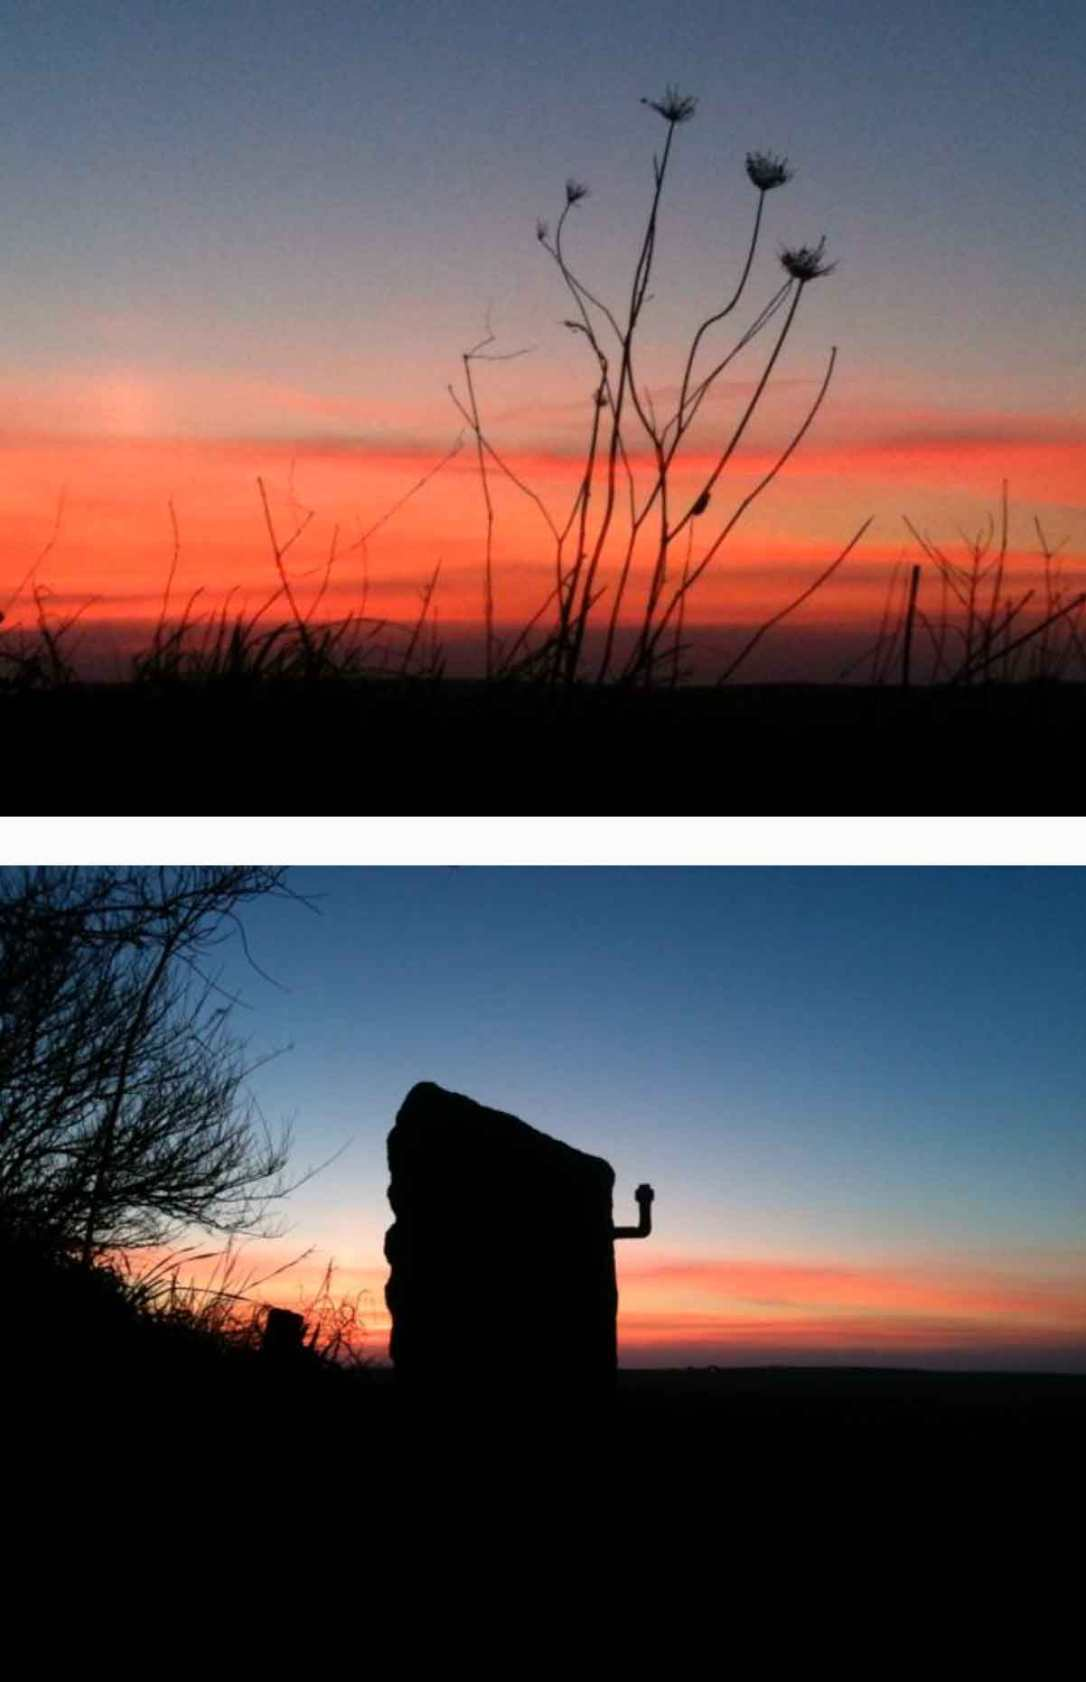 wildflowers and gate post silhouetted on a deep orange sunset at barefoot glamping cornwall